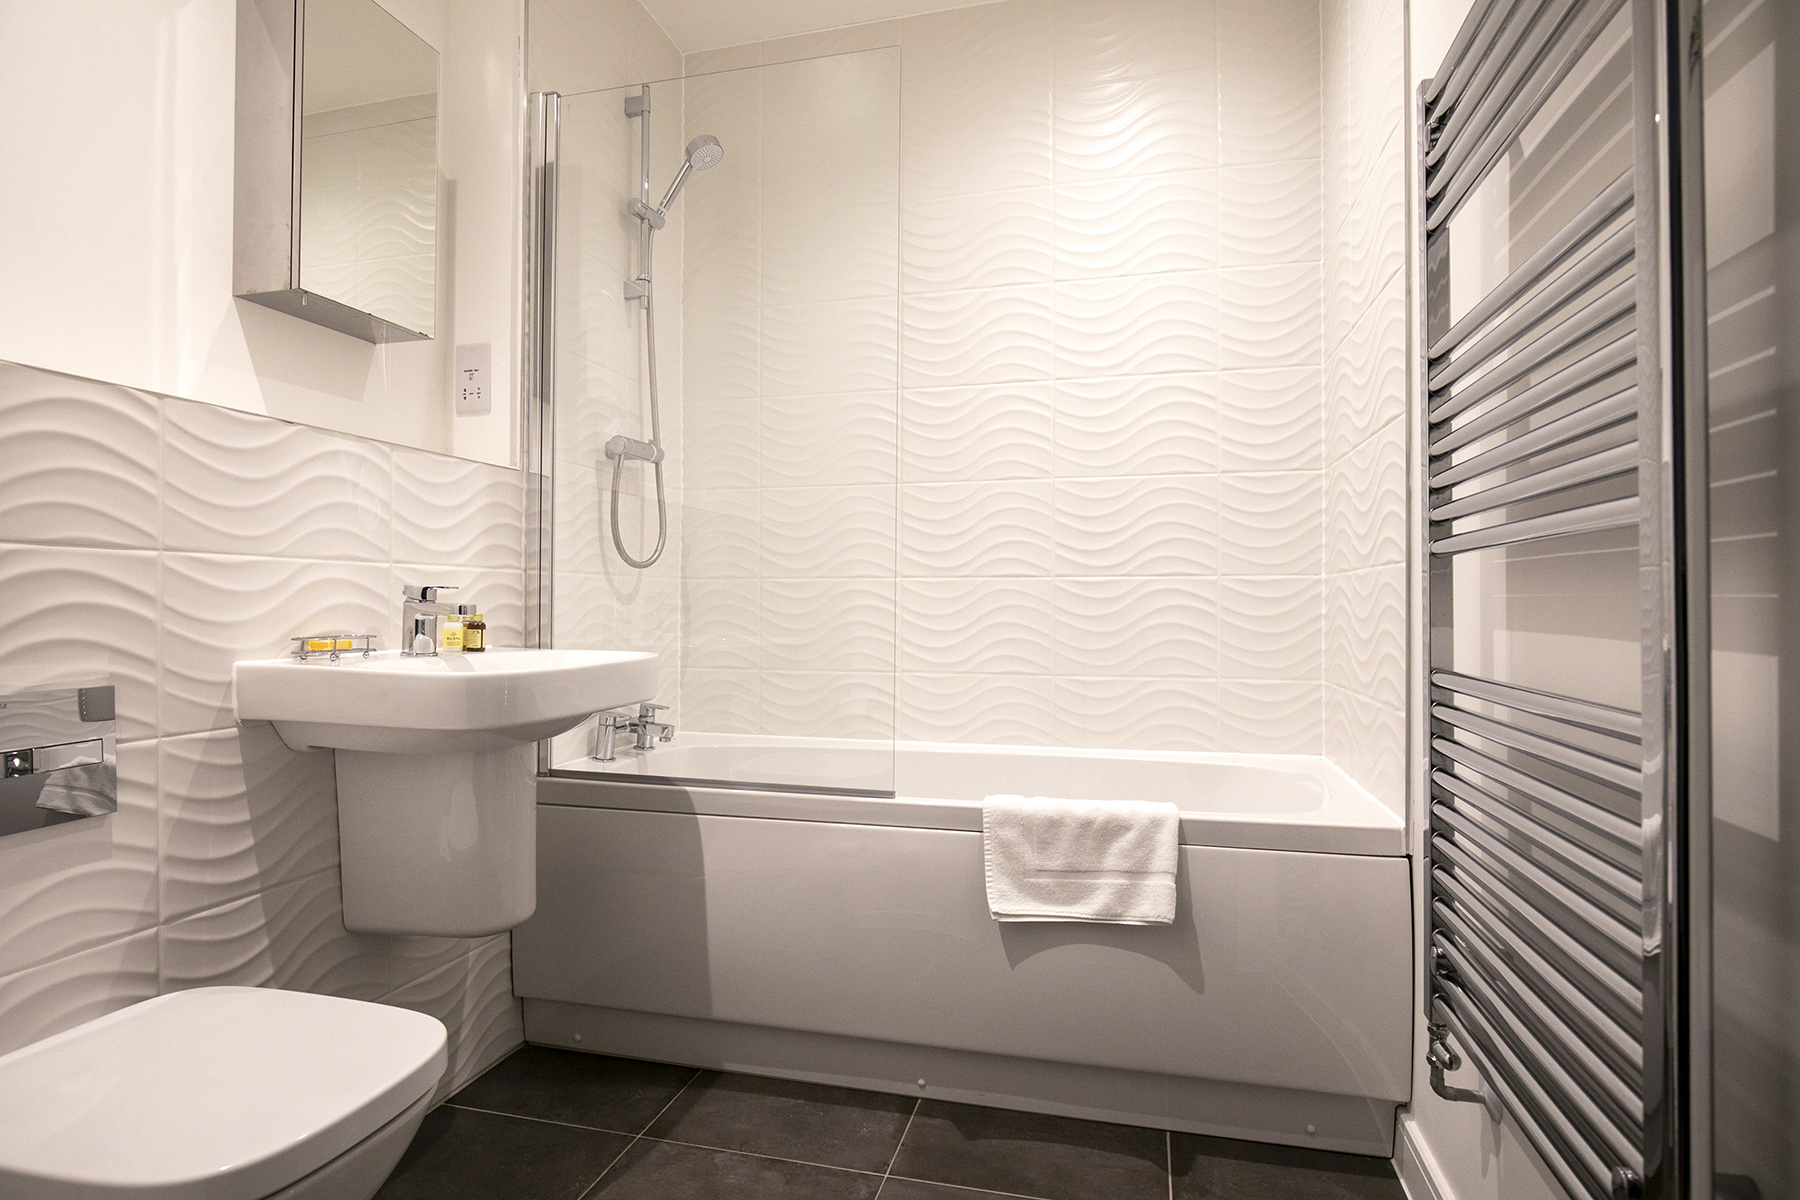 Bathroom at Wey Corner Apartment, Centre, Guildford